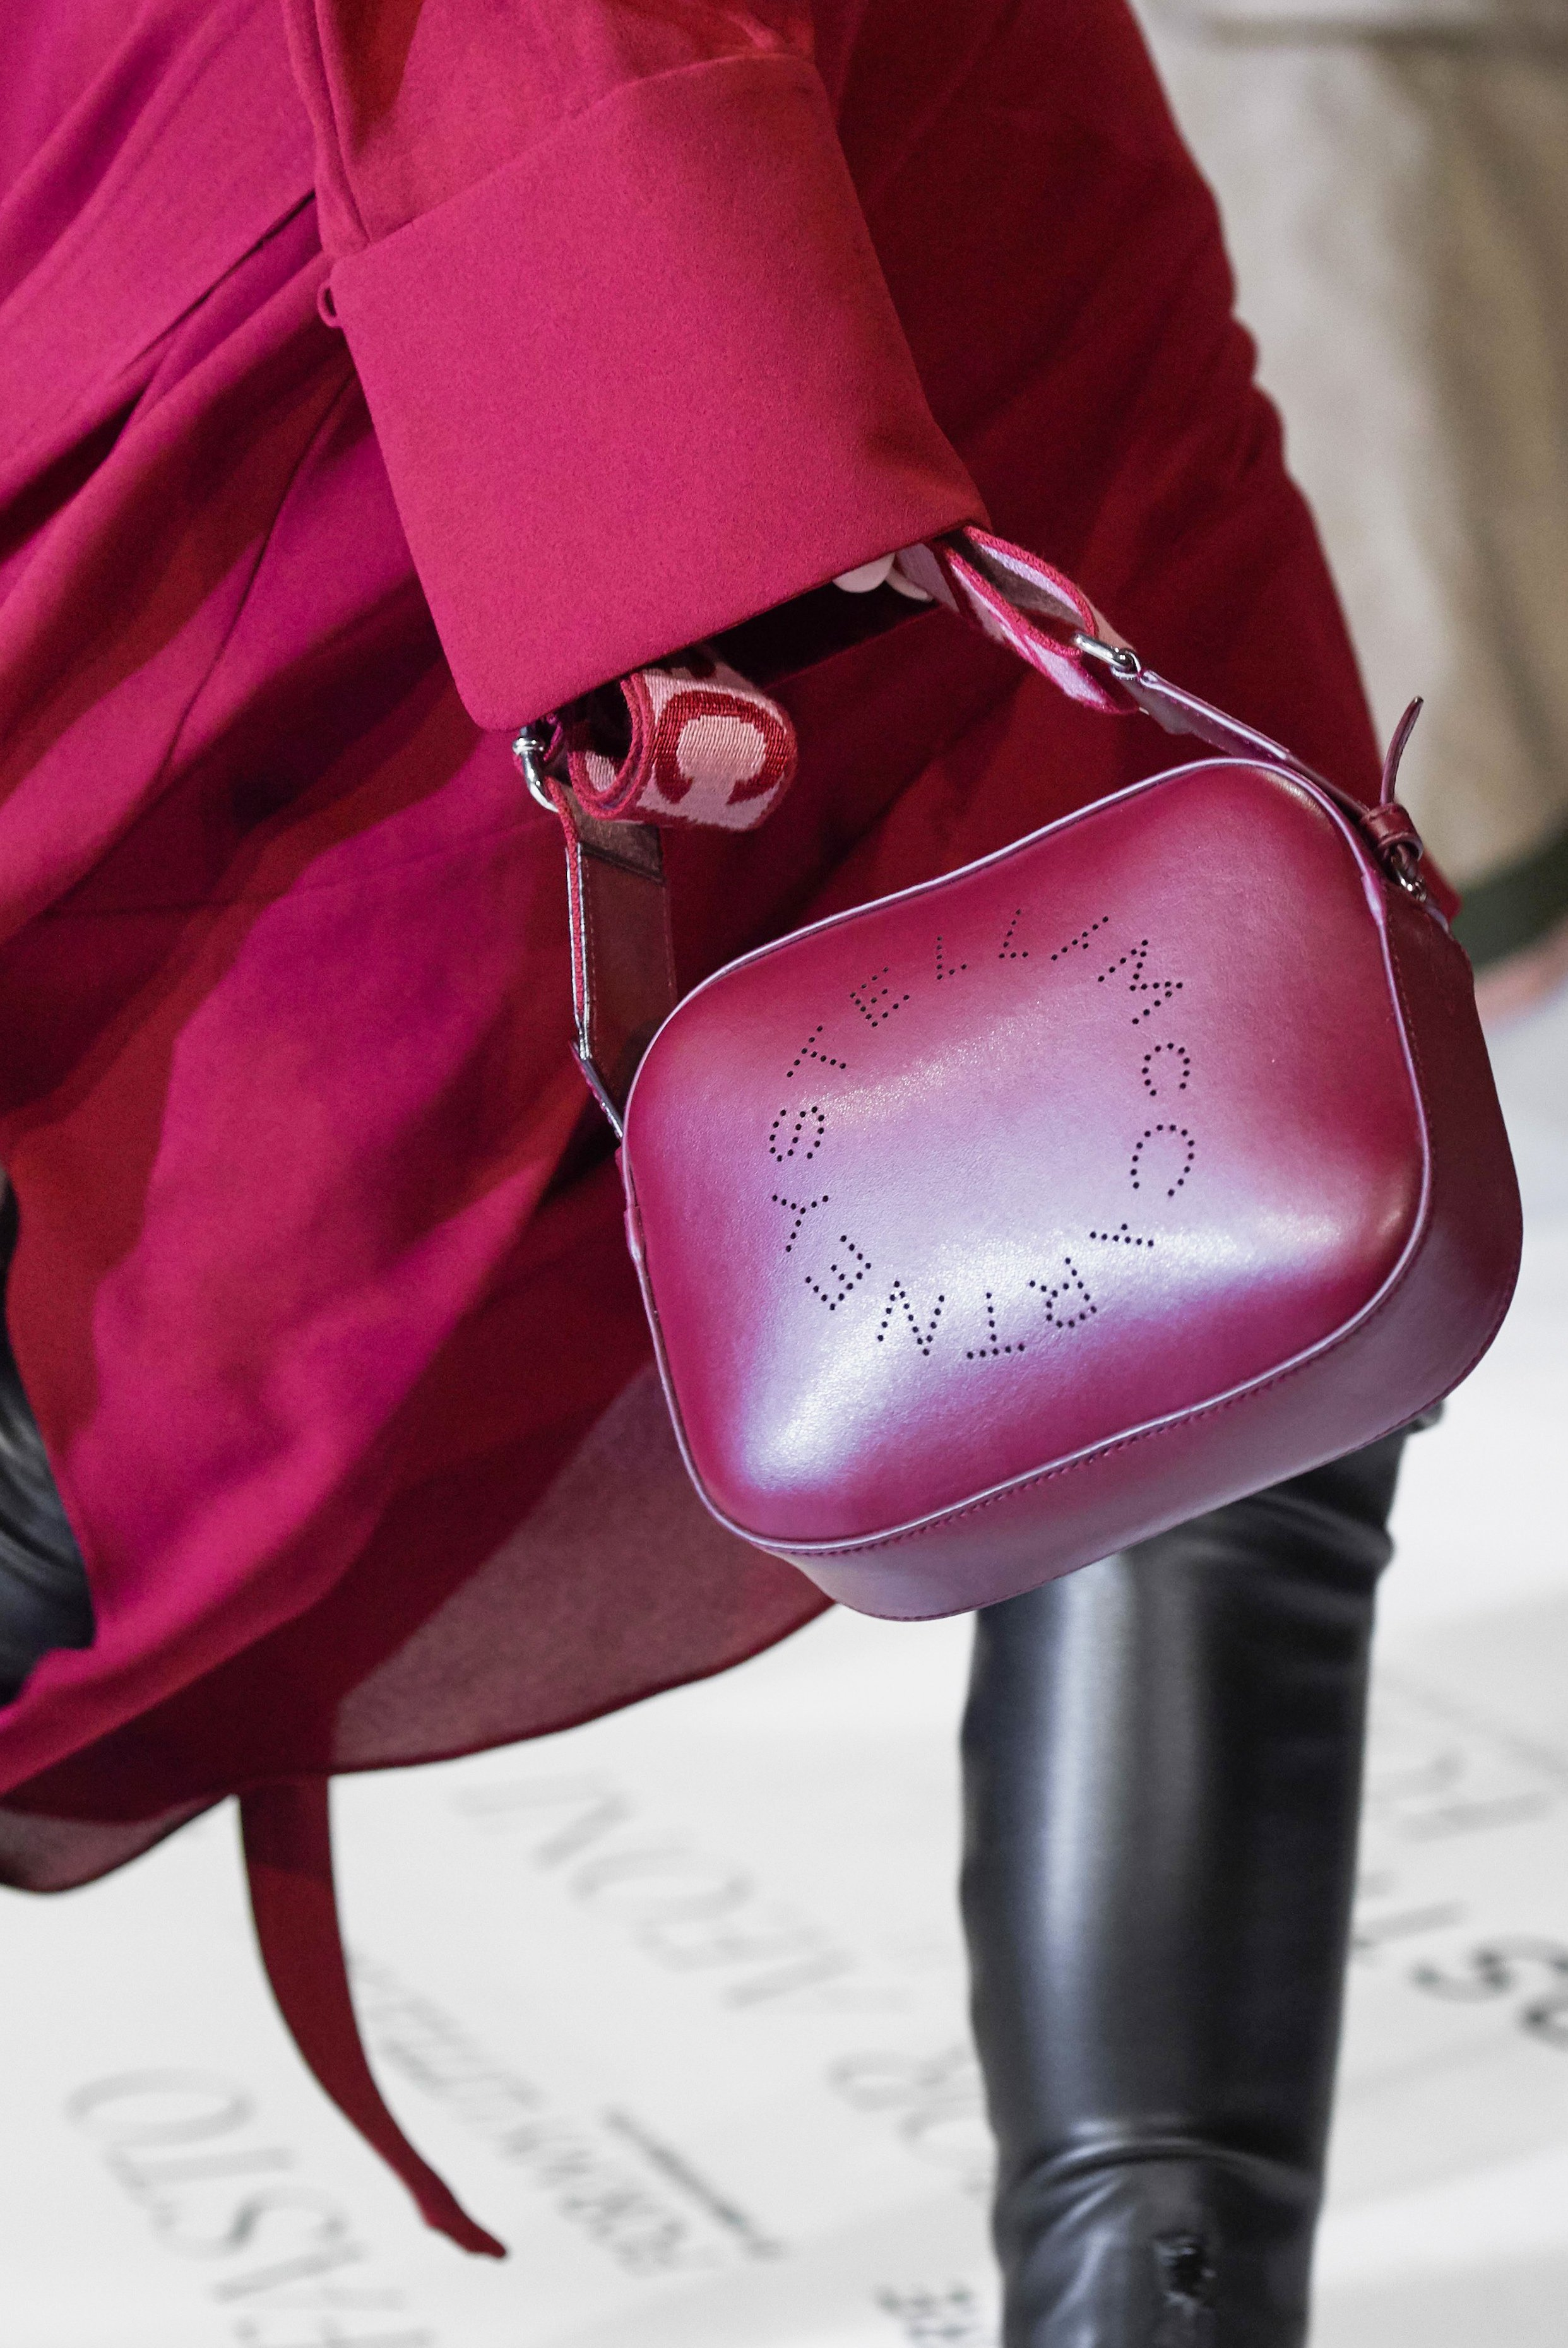 Stella McCartney Logo Mini bag from the Fall 2019 Runway Bag Collection